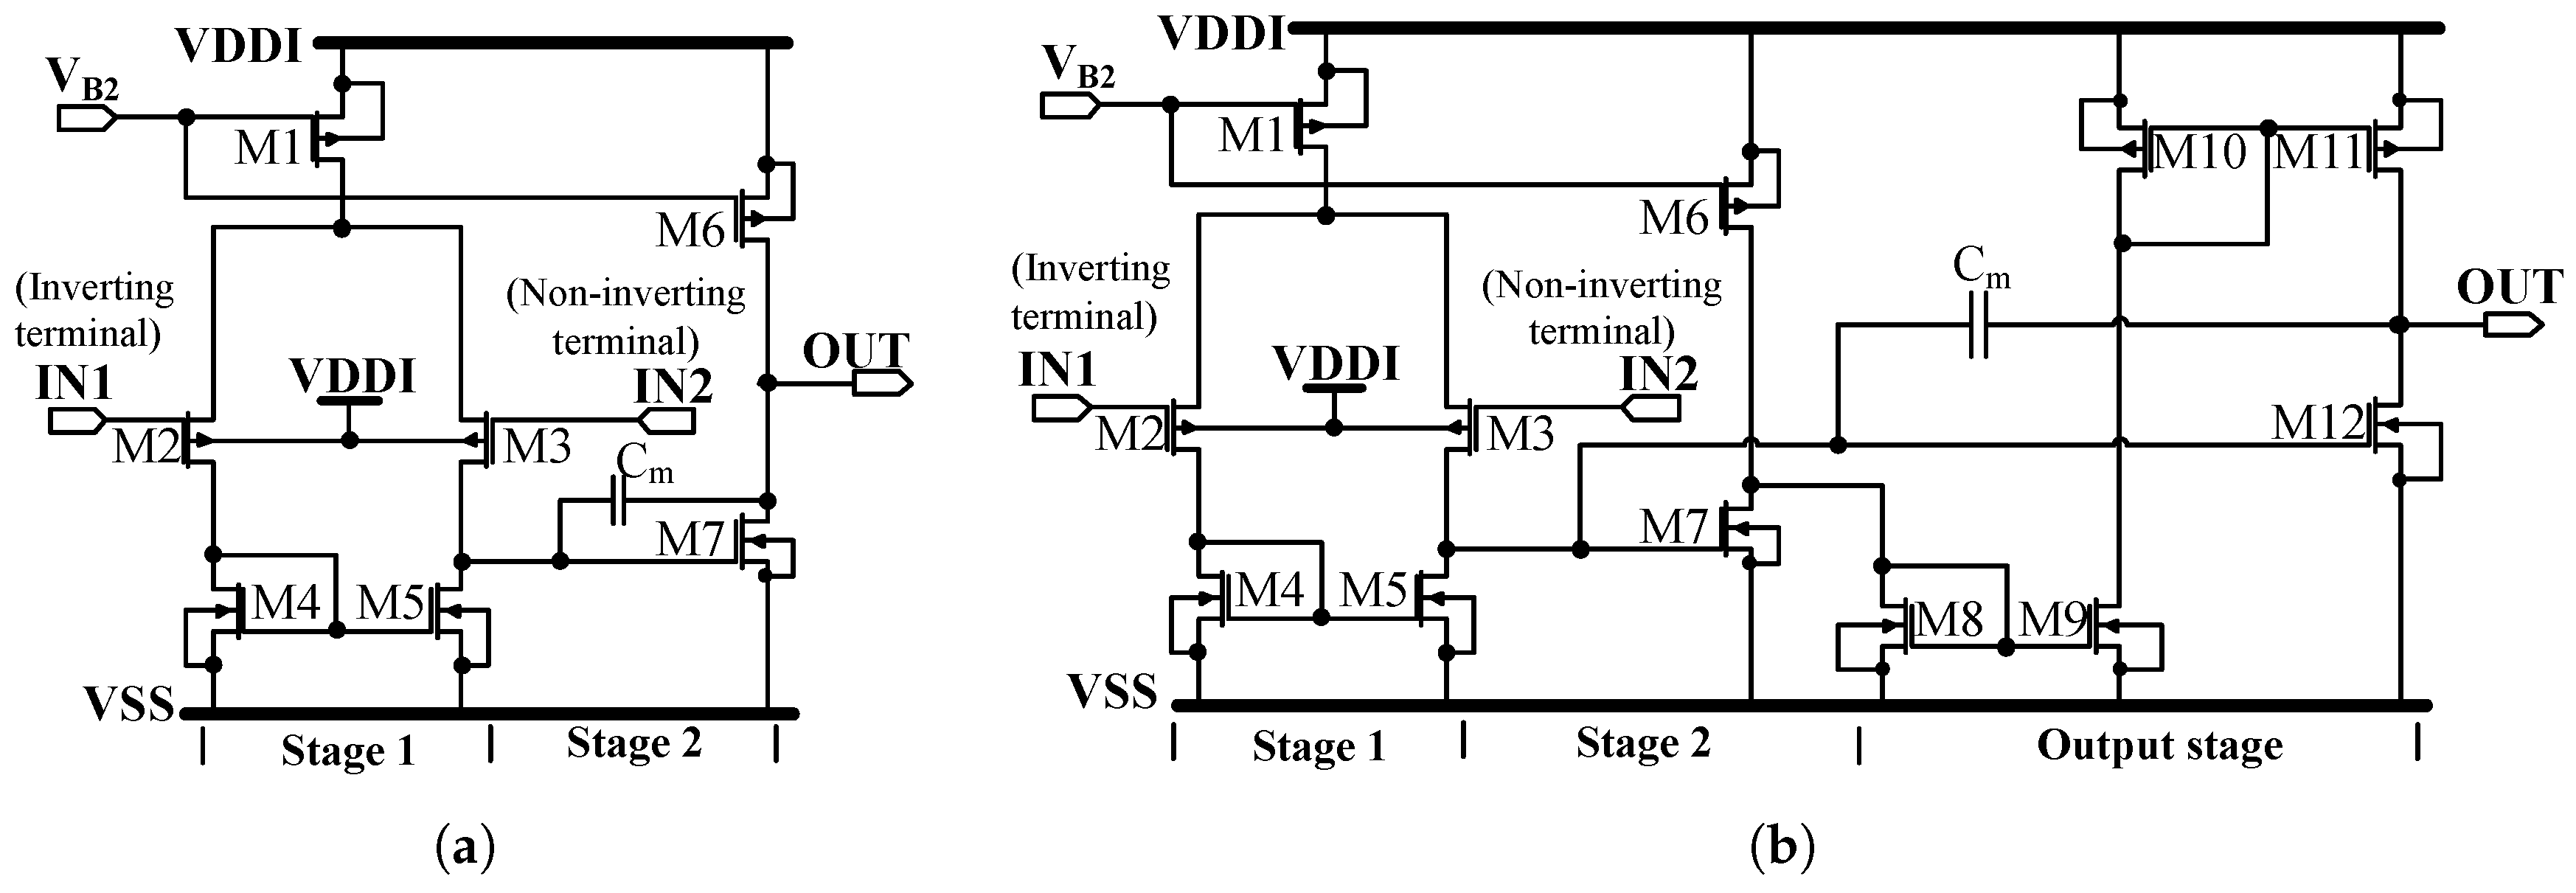 Emg Block Diagram As Well Sensor Lifier Circuit Piezo On Capacitive Jlpea Free Full Text Design Of A Programmable Passive Soc For 08 00003 G011